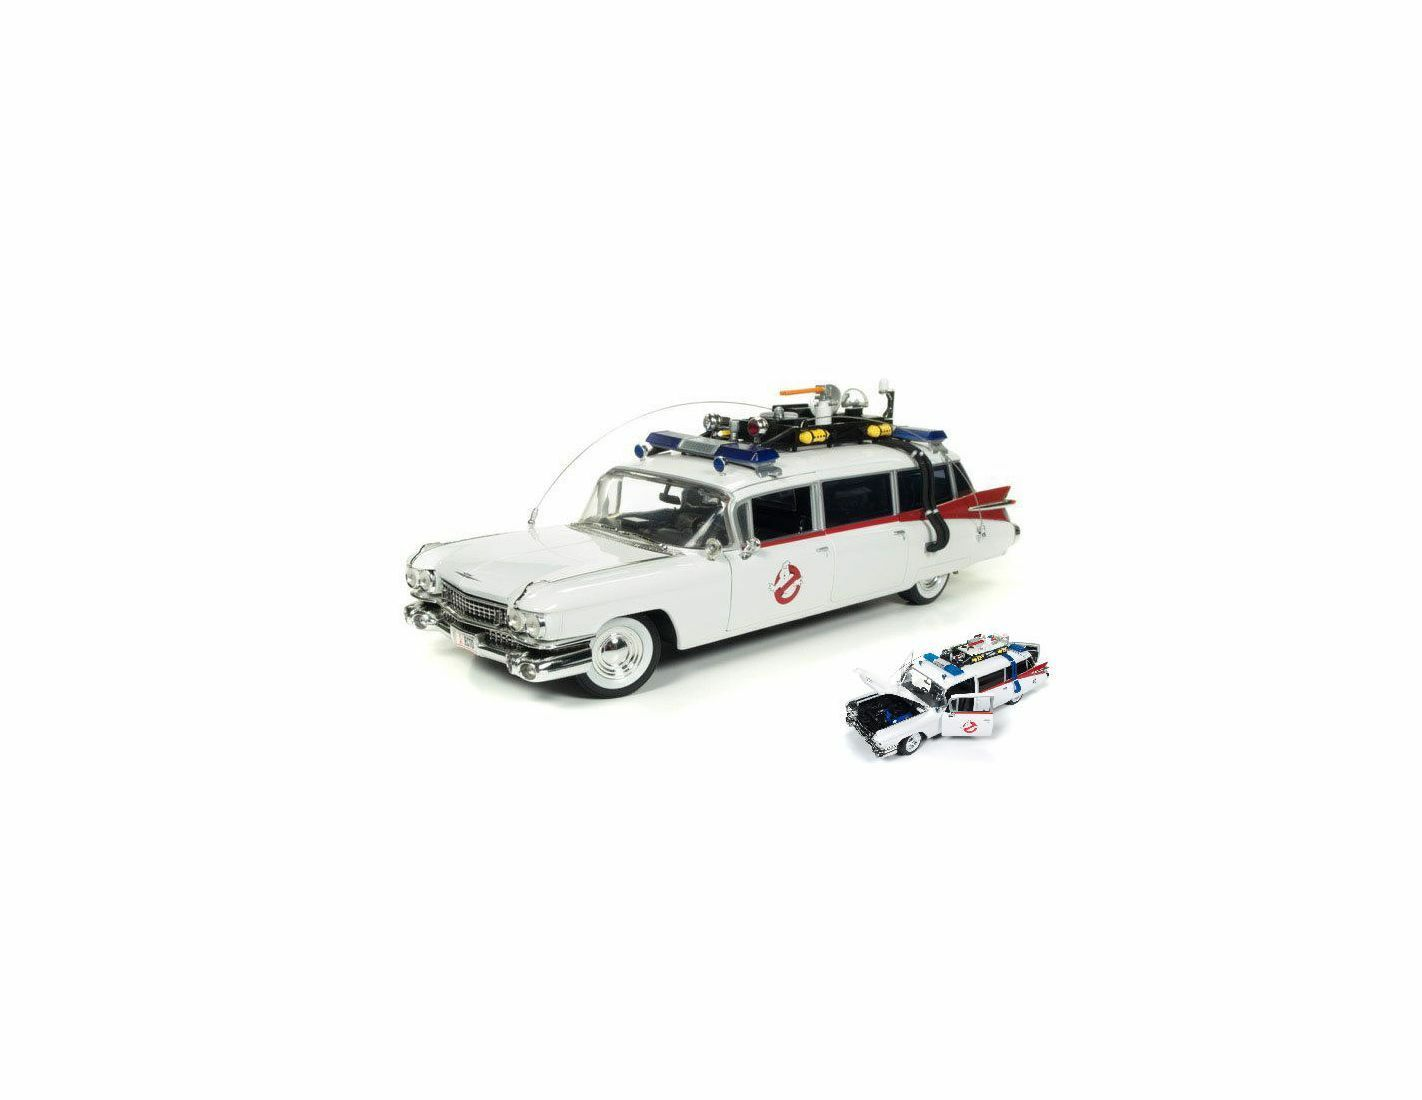 Auto World AWSS118 CADILLAC GHOSTBUSTERS ECTO-1 WITH GHOST SLIMER 1959 cm 30 1:2